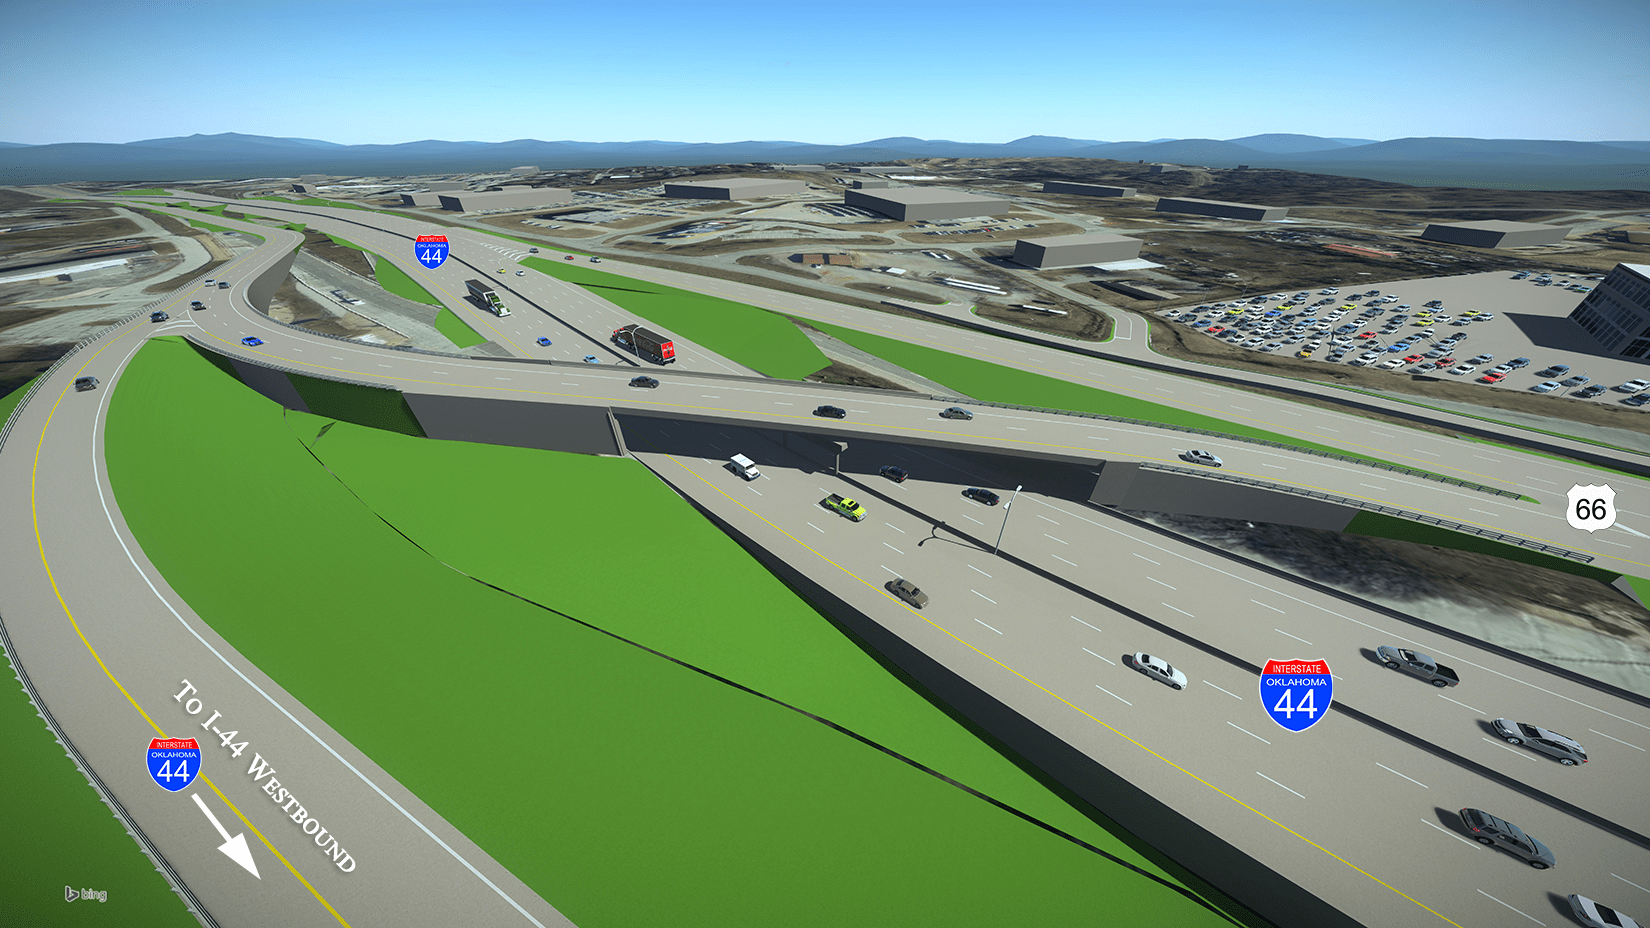 This 3D rendering of the proposed new construction includes a standard diamond interchange at 49th W. Ave. near the Town West shopping center, a ramp going over the Turner Turnpike, with a right-lane entrance for travelers heading west on Highway 66.